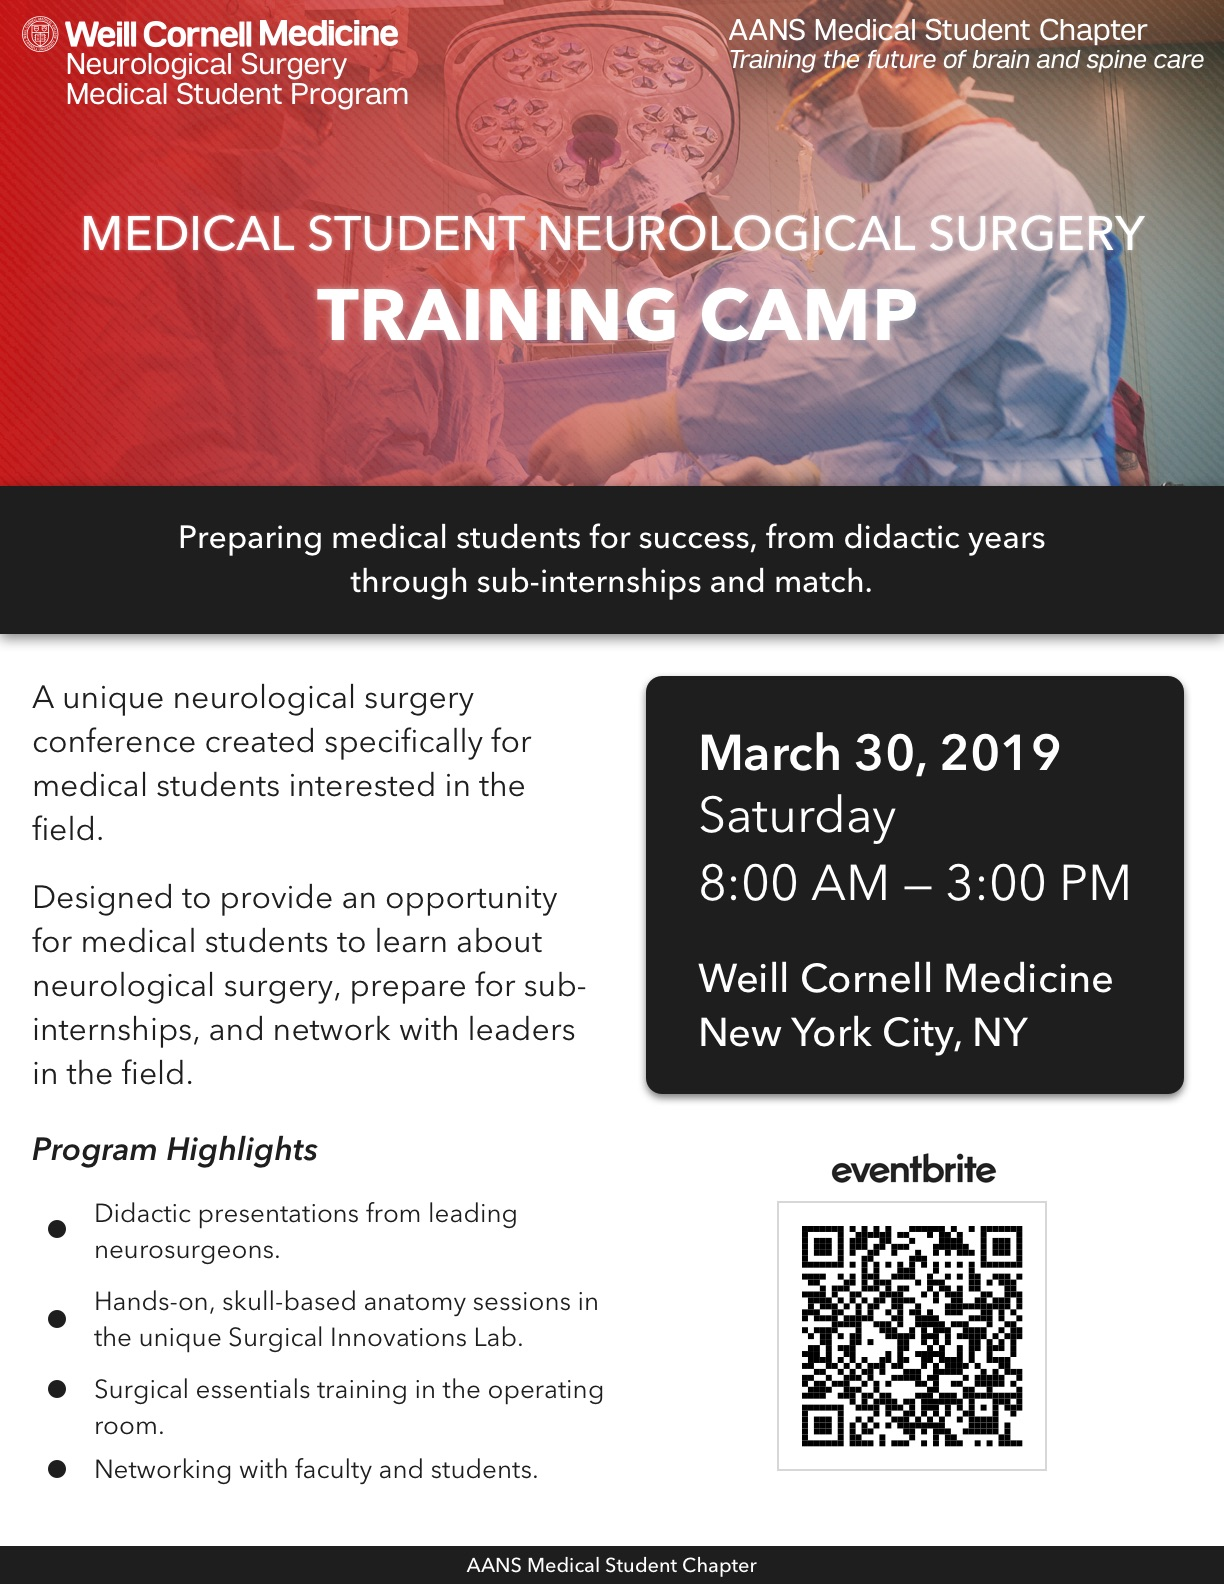 Medical Student Neurosurgery Training Camp 2019 - 30 MAR 2019